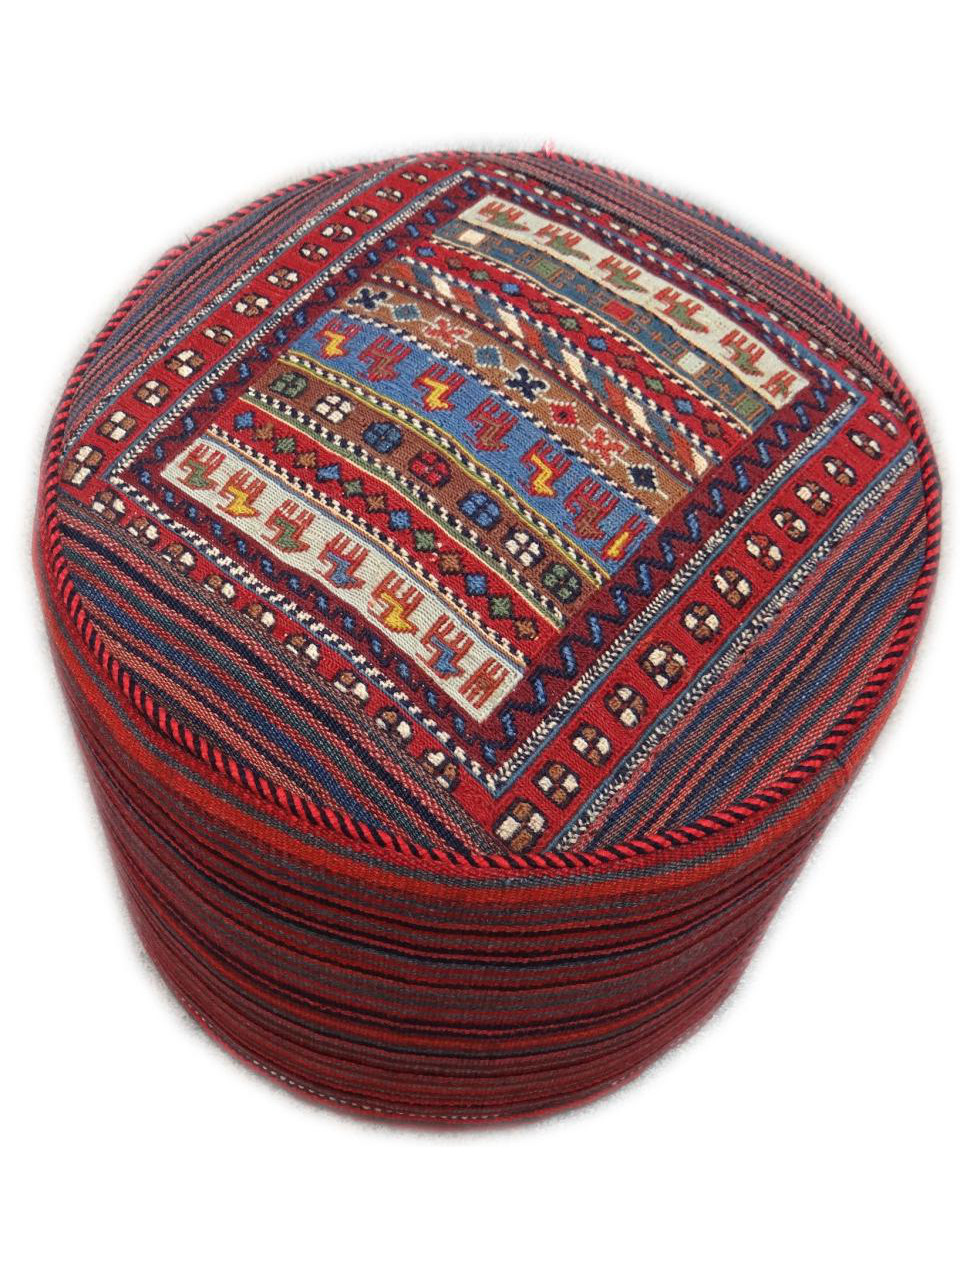 pouf kilim persian puffs n 1599 45x45cm. Black Bedroom Furniture Sets. Home Design Ideas